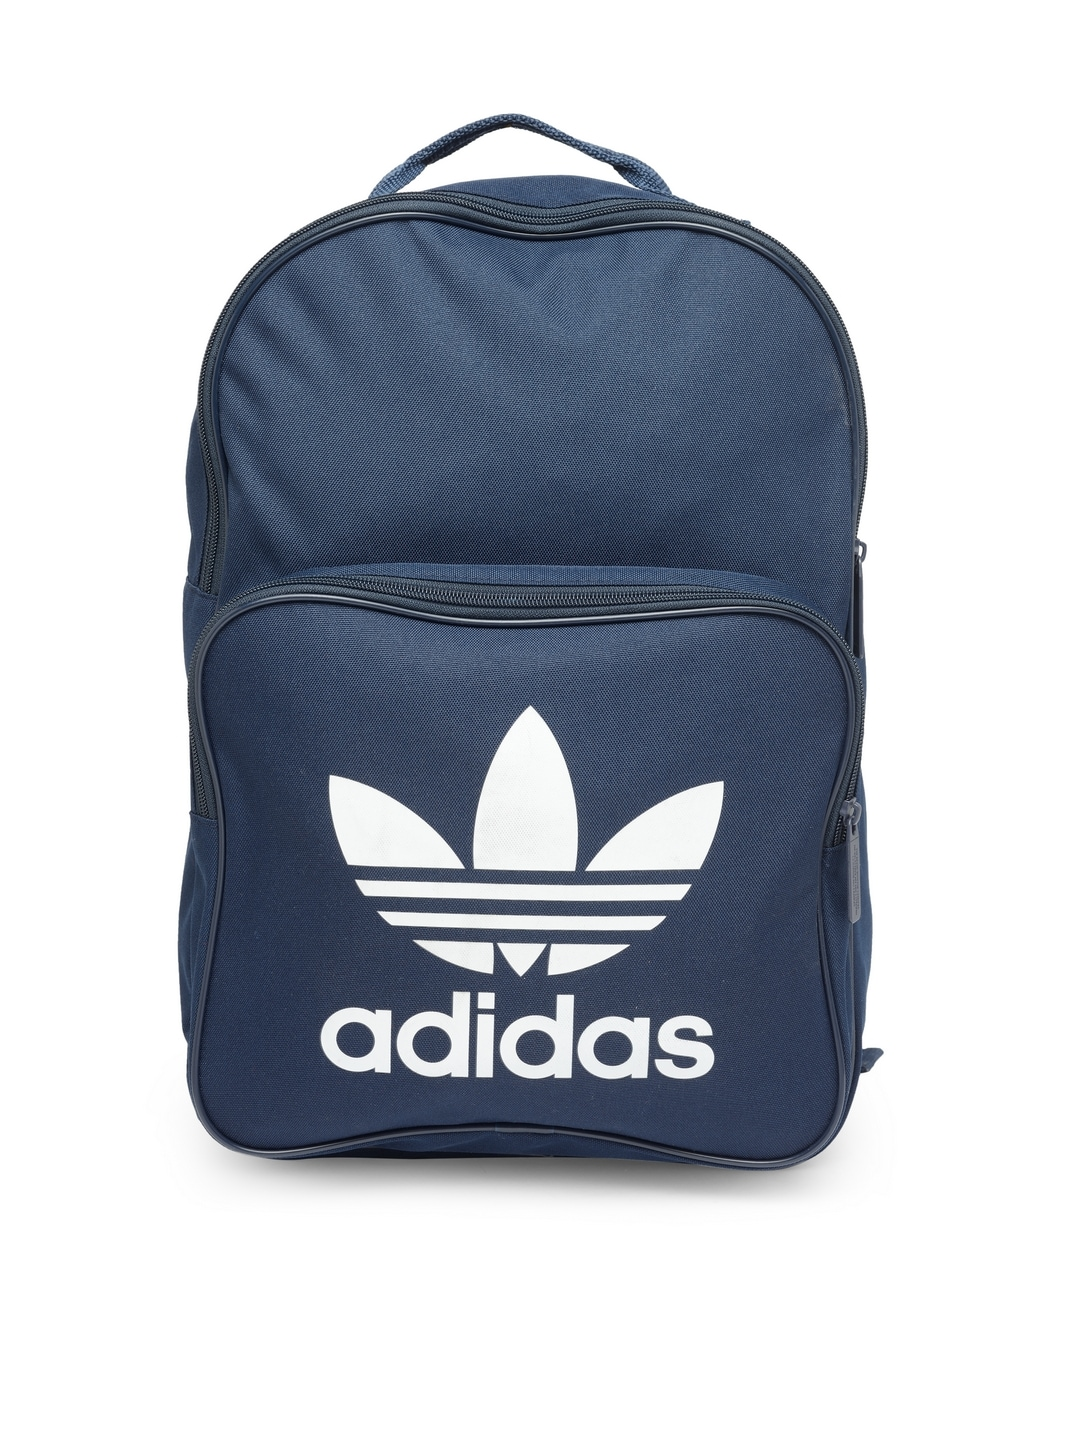 63c3a75ff046 Men Sports Adidas Backpacks - Buy Men Sports Adidas Backpacks online in  India